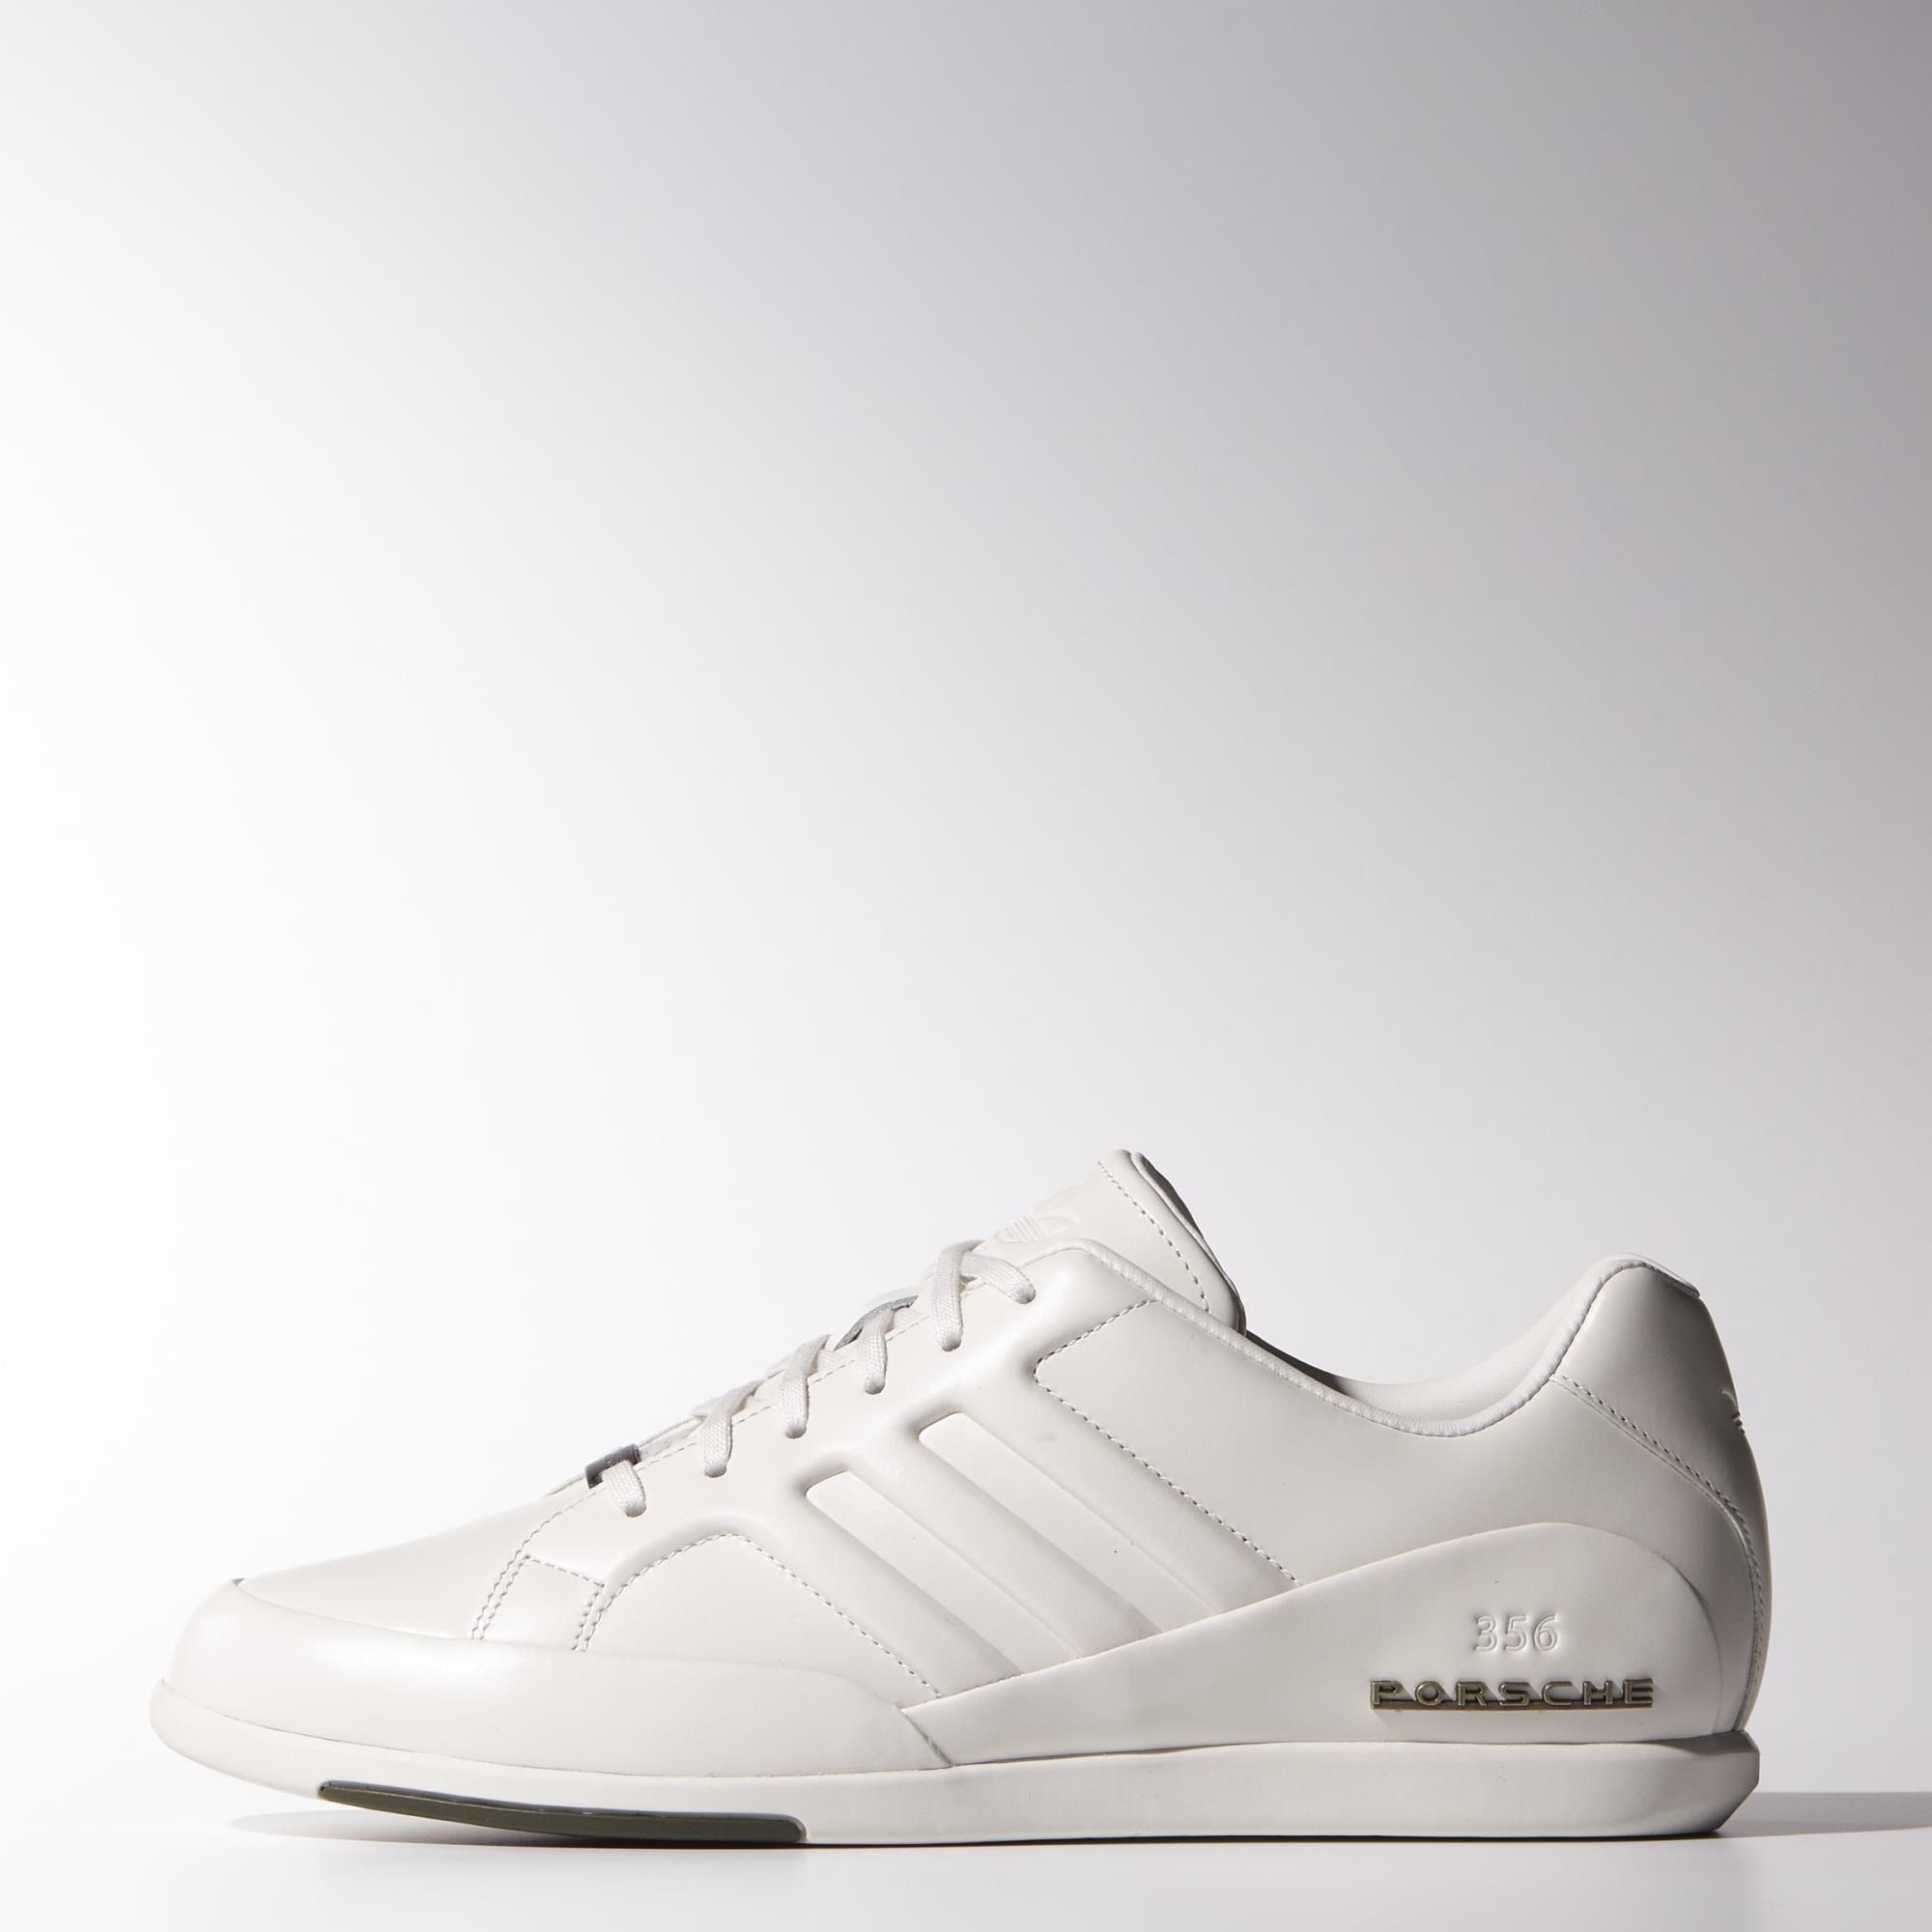 adidas | Porsche Design 356 Shoes